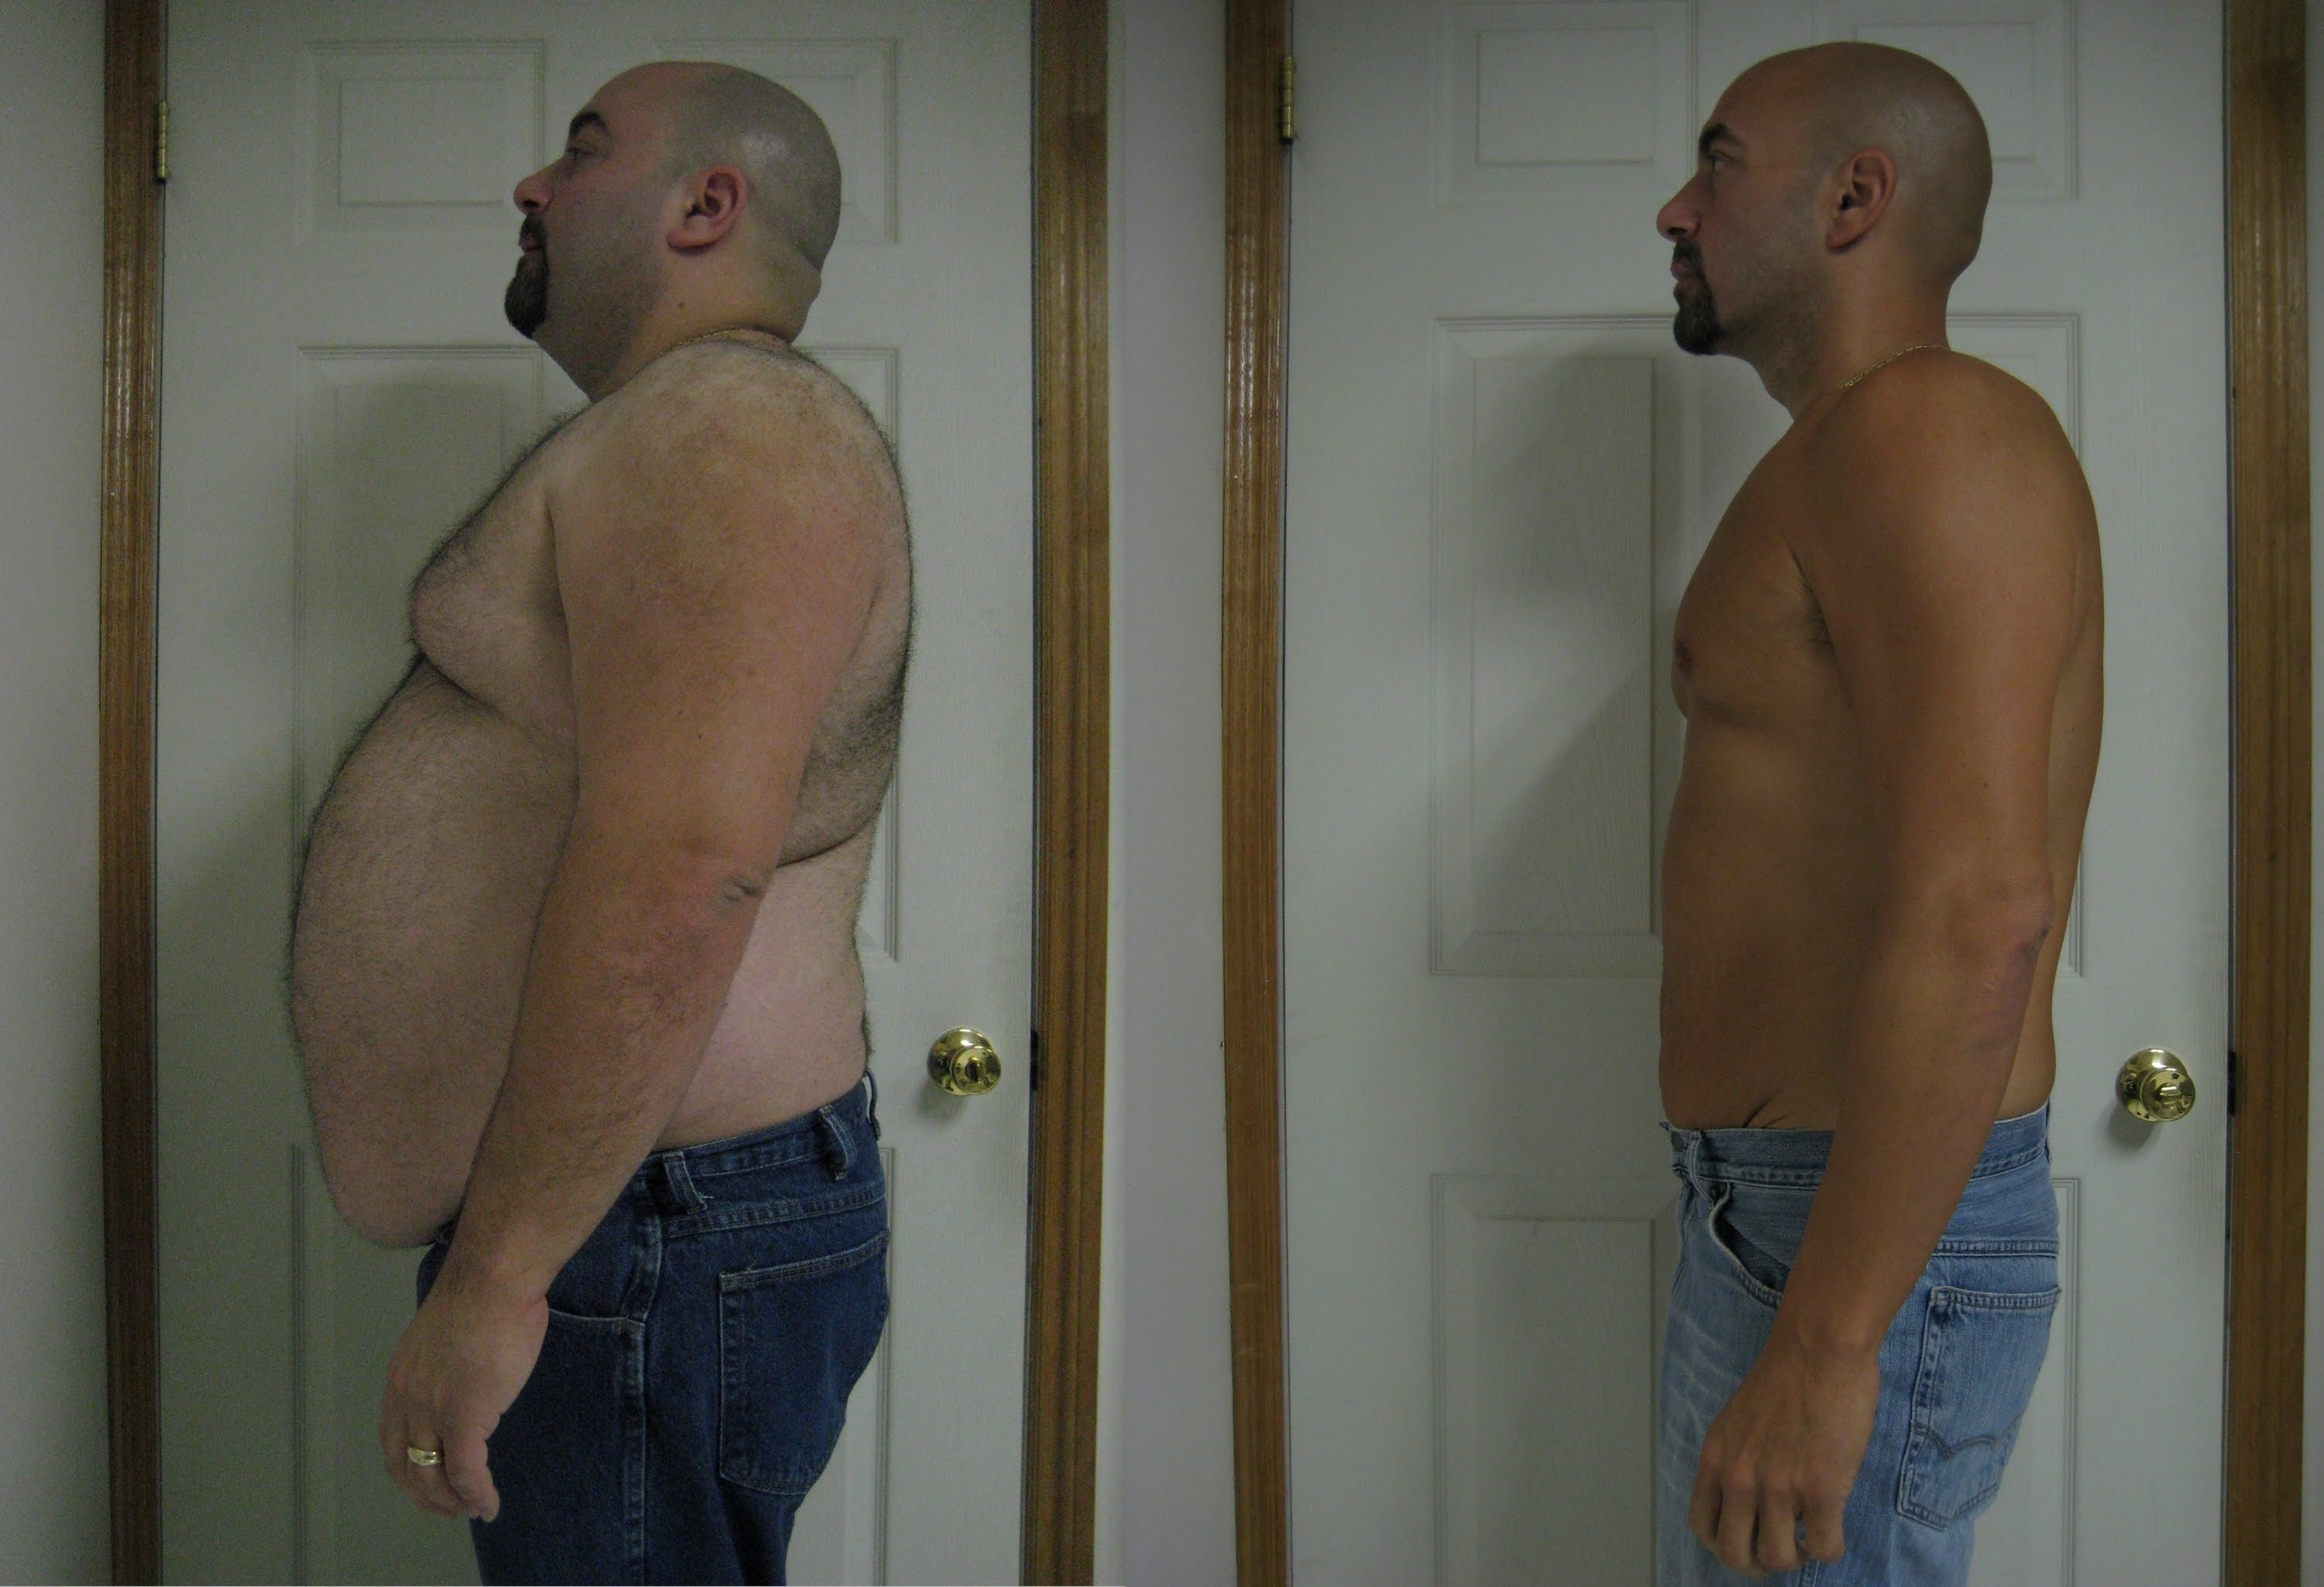 Gastric Bypass Surgery Before And After 172lbs Weightloss Home